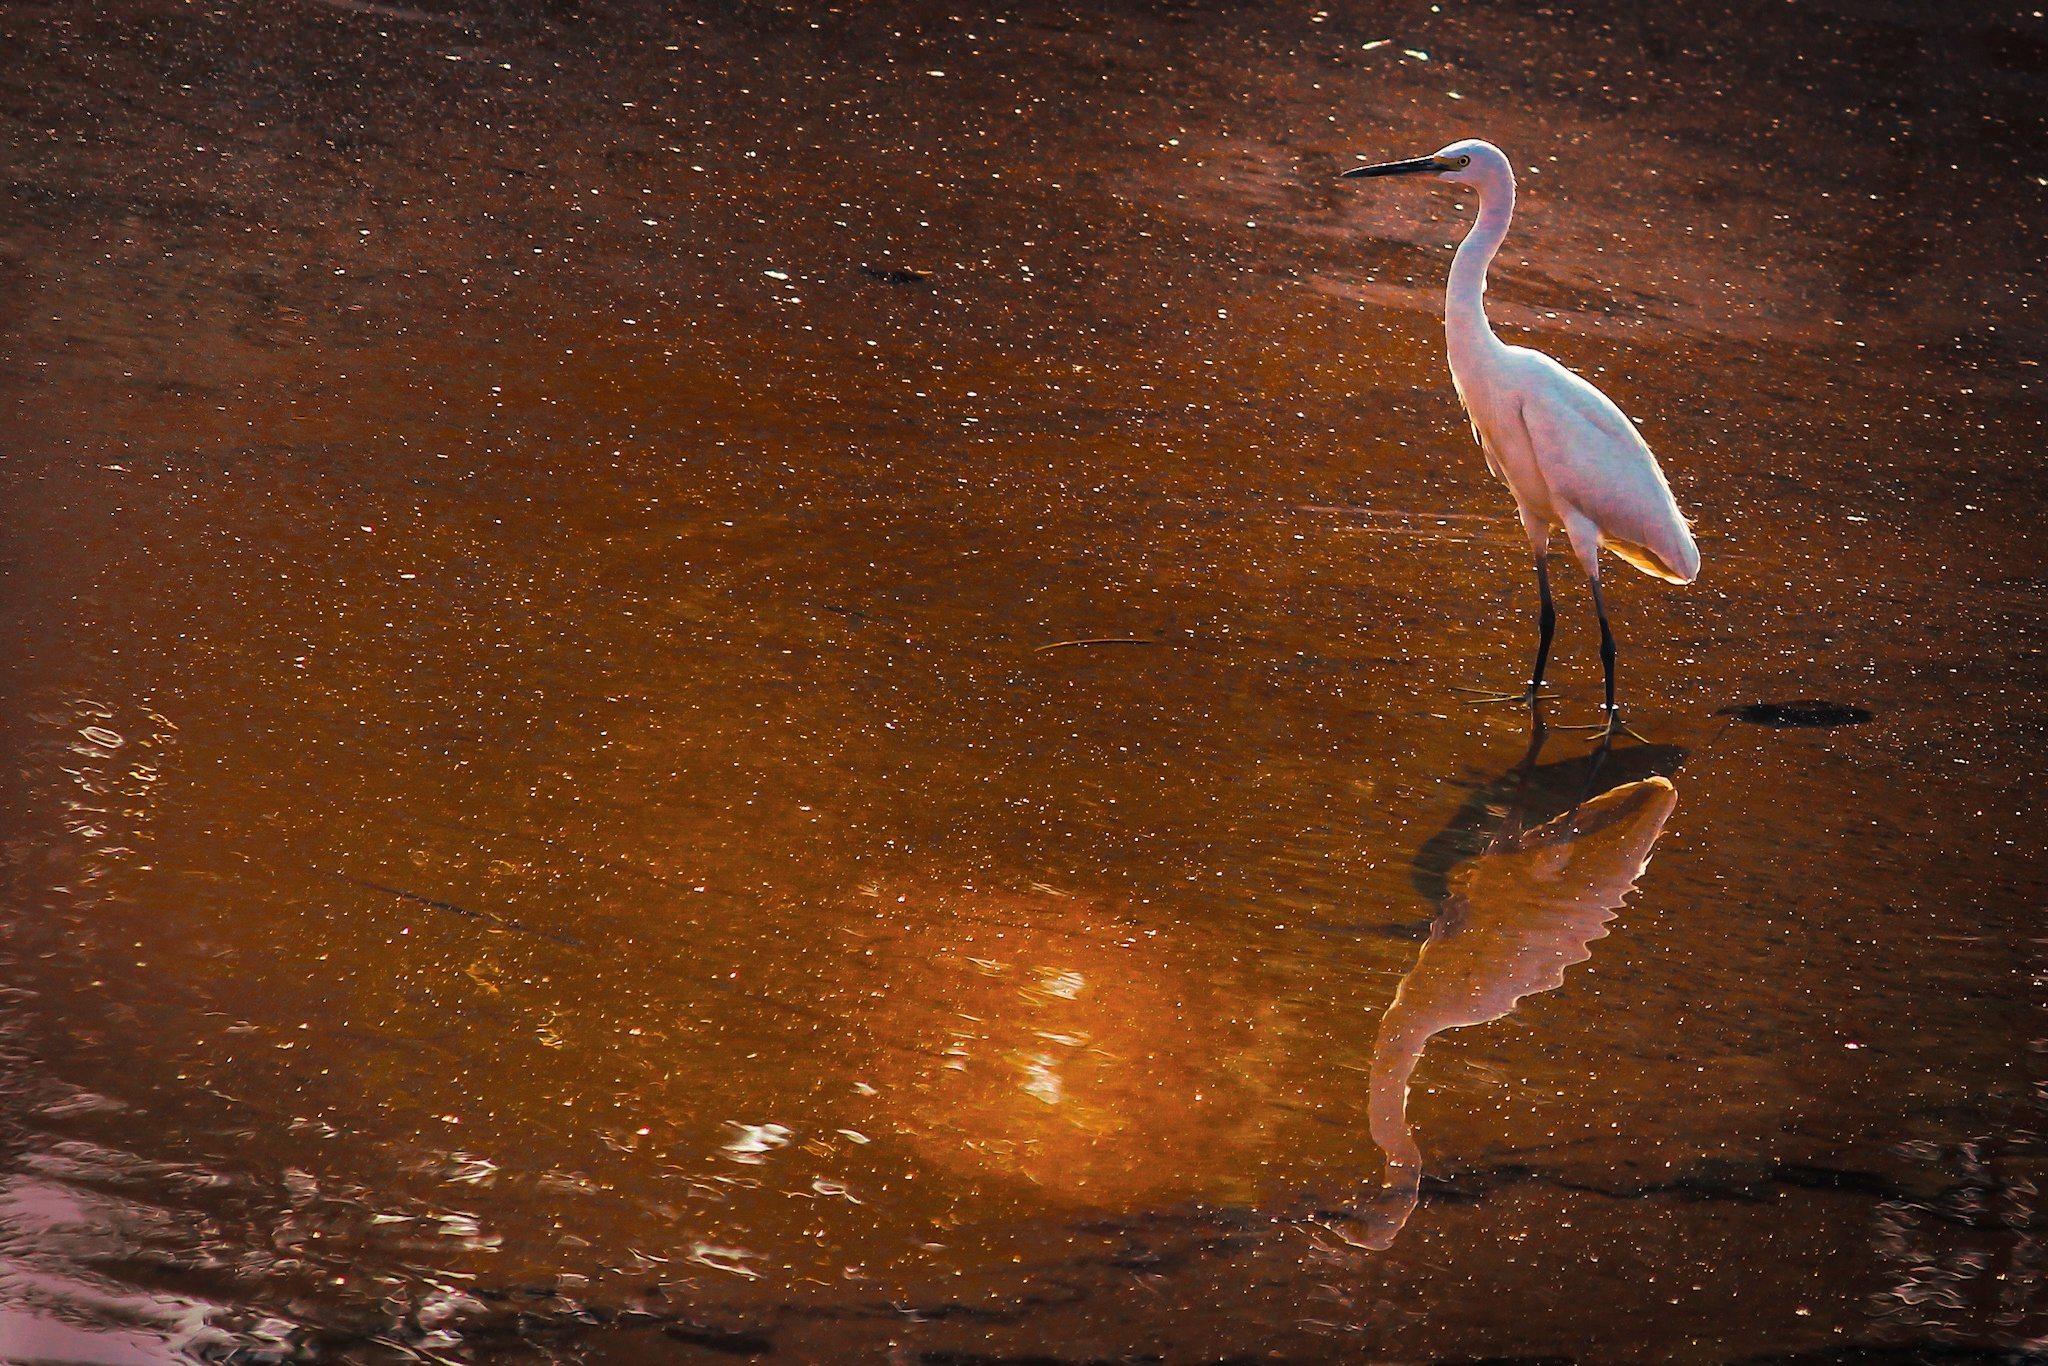 Birds reflection in the river